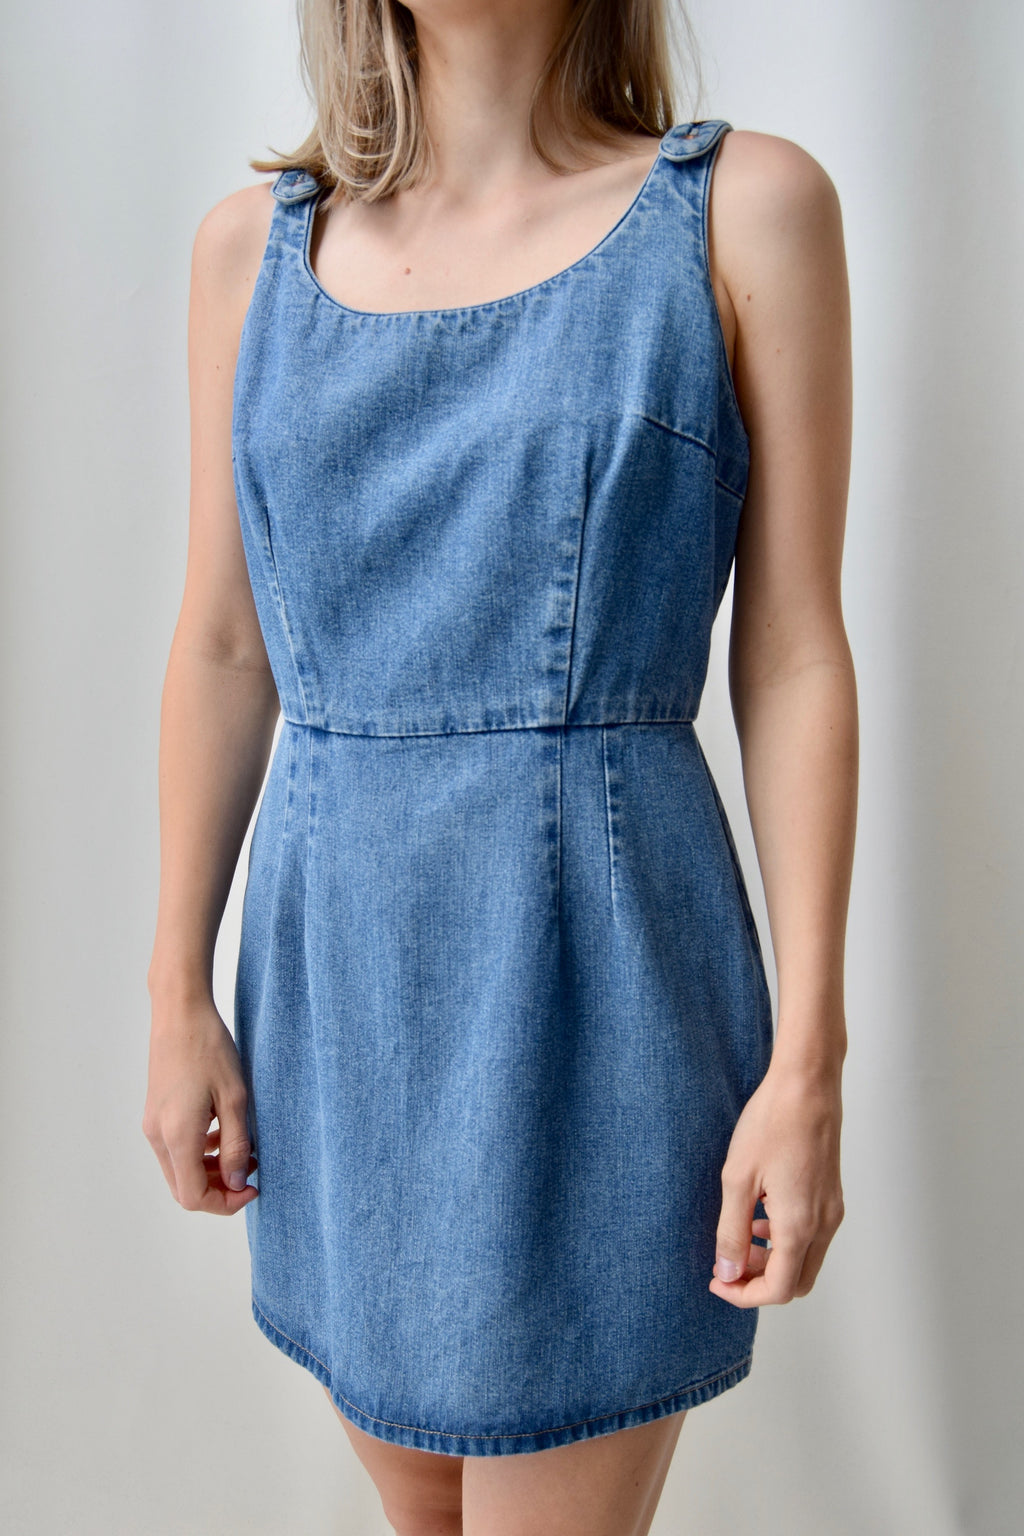 90's Guess Denim Dress